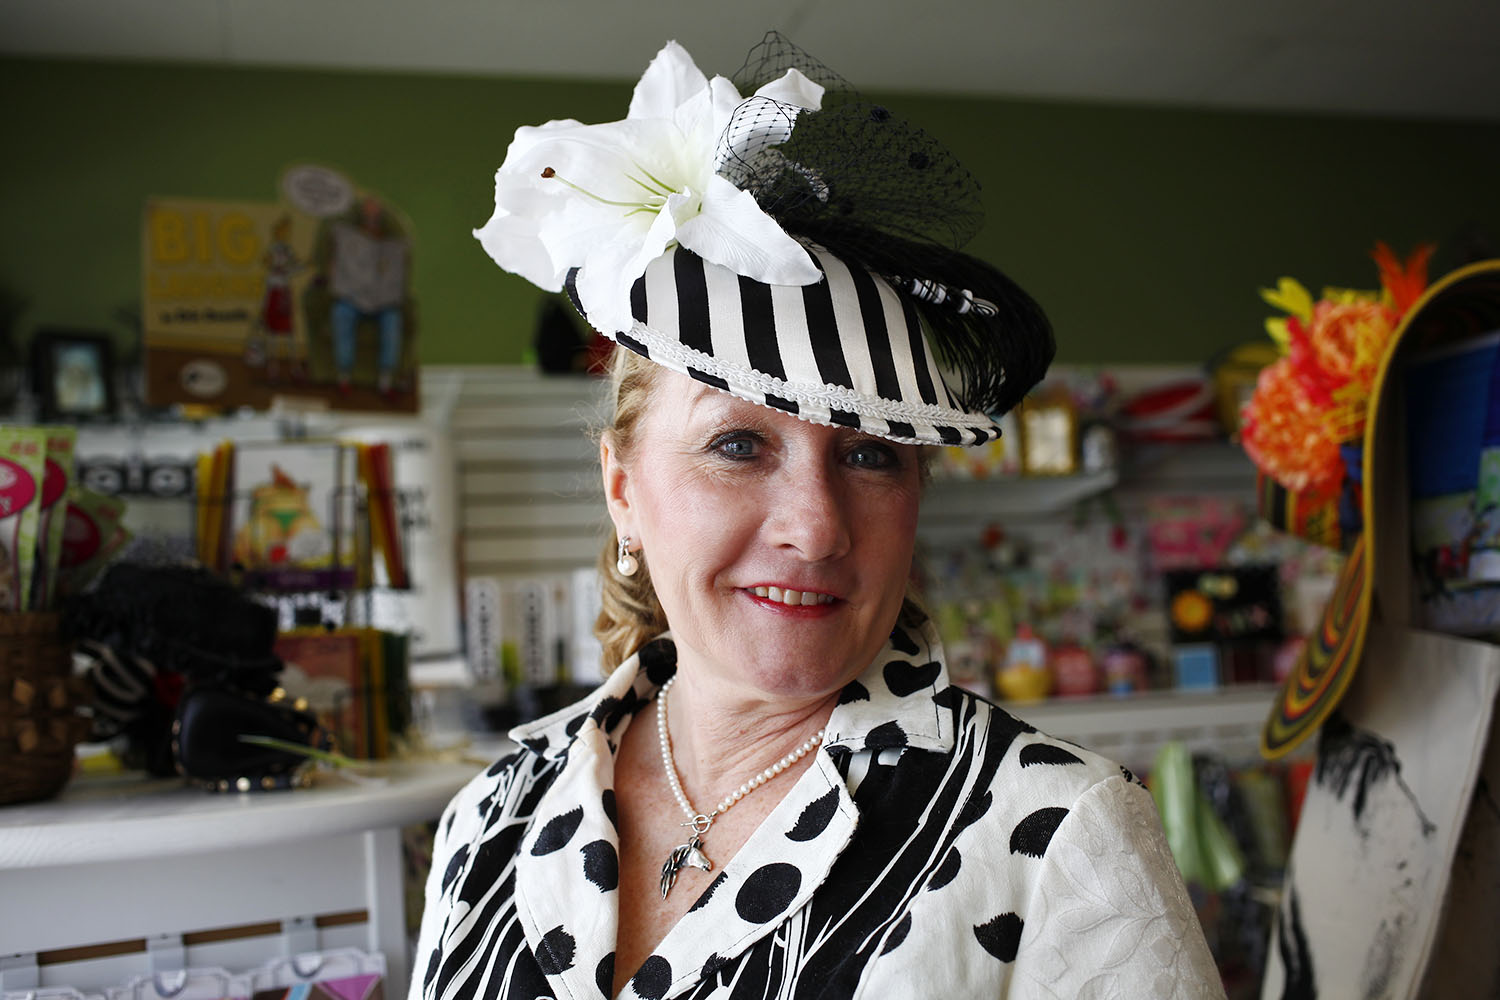 Sheila Nobles is half of the millinery team of CK Nobles. Her and her business partner C. Kevin Swansey started making hats more than a decade ago and served as the official milliners for the Kentucky Derby Museum for 10 years.